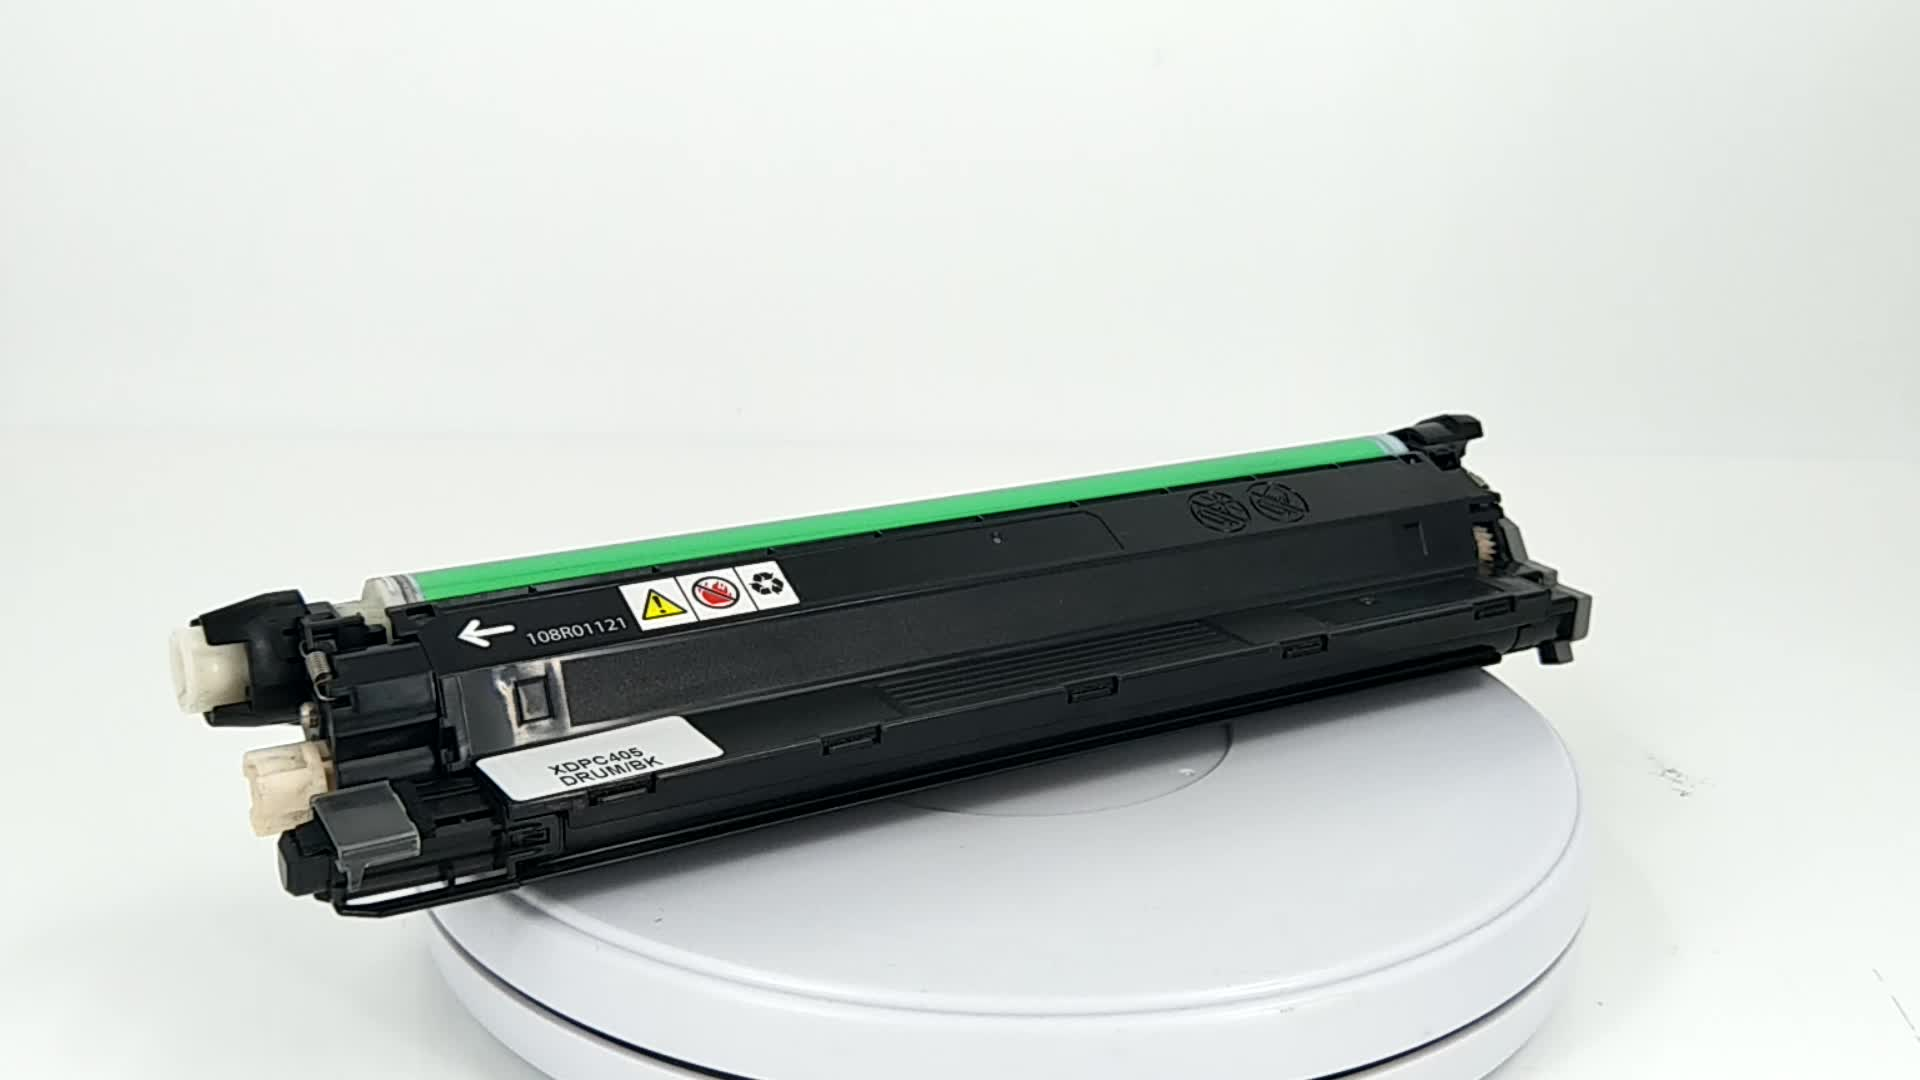 Compatible Xerox DocuPrint-CP405d CM405df CT350983 CT202018 CT202019 CT202020 CT202021 Drum Unit